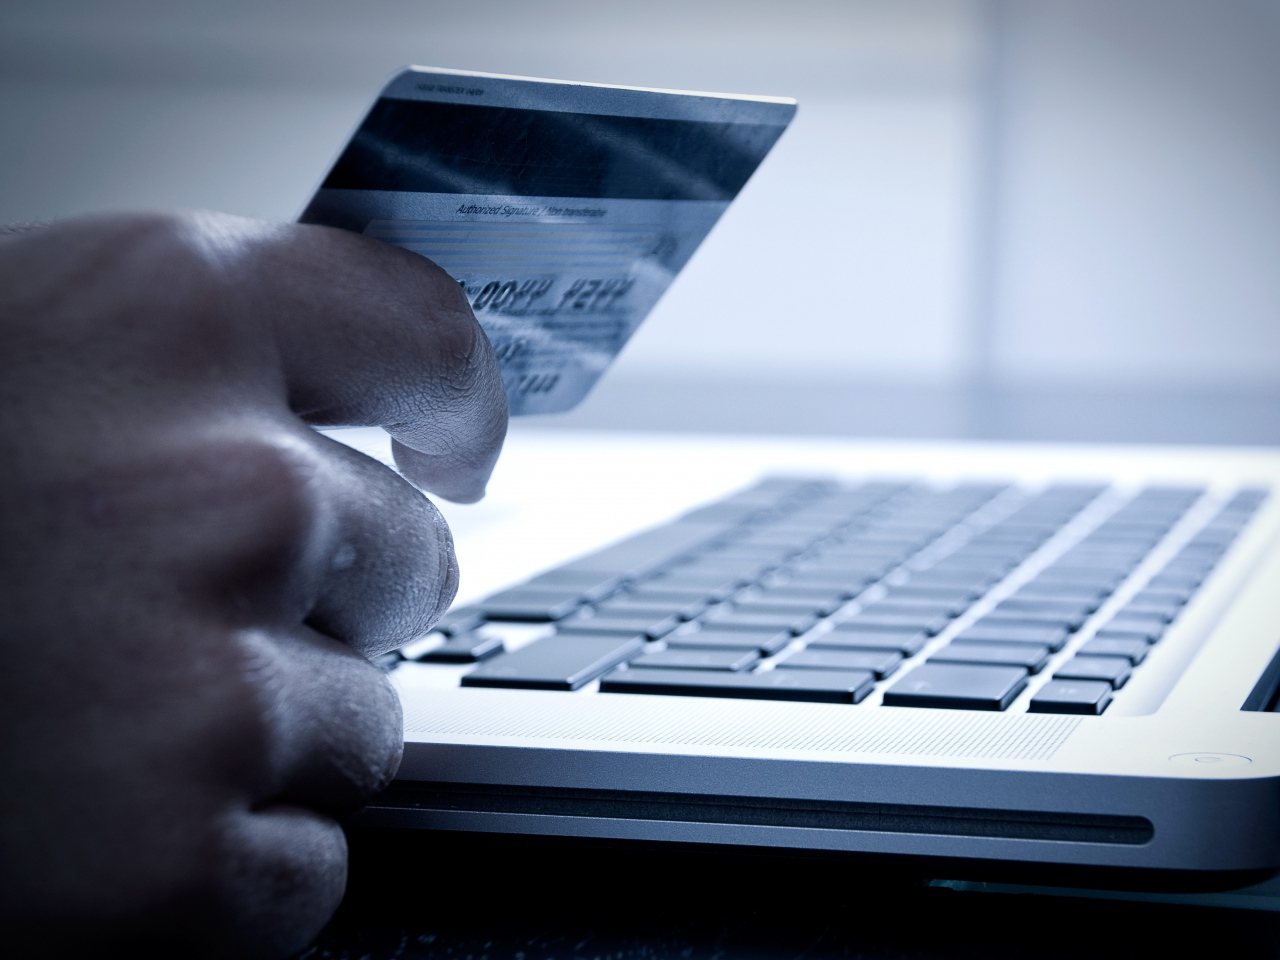 hand-card-money-online-purchase-laptop